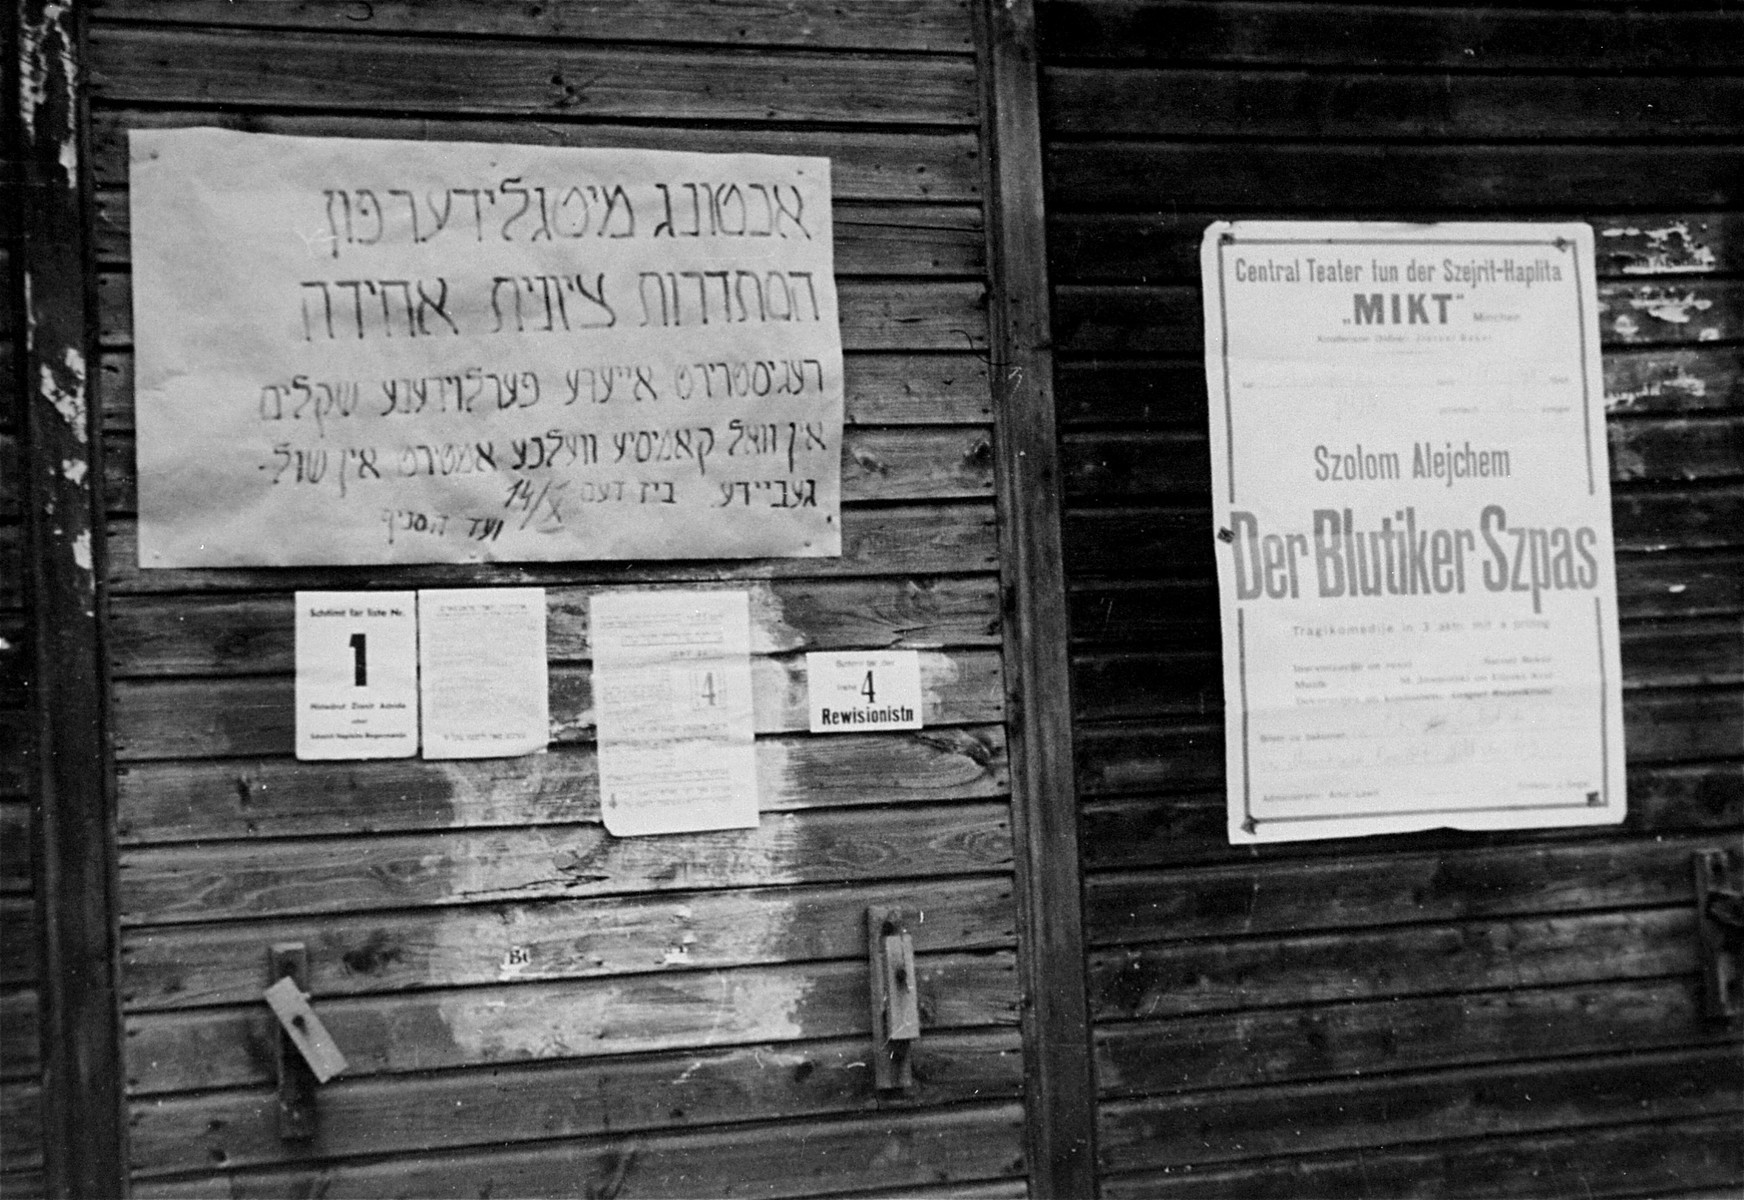 Notices posted on the wall of a barracks at the Neu Freimann displaced persons camp.  The poster on the left is addressed to members of the united Zionist labor organization.  The one on the right advertises the performance of a Yiddish play by Sholem Aleichem.